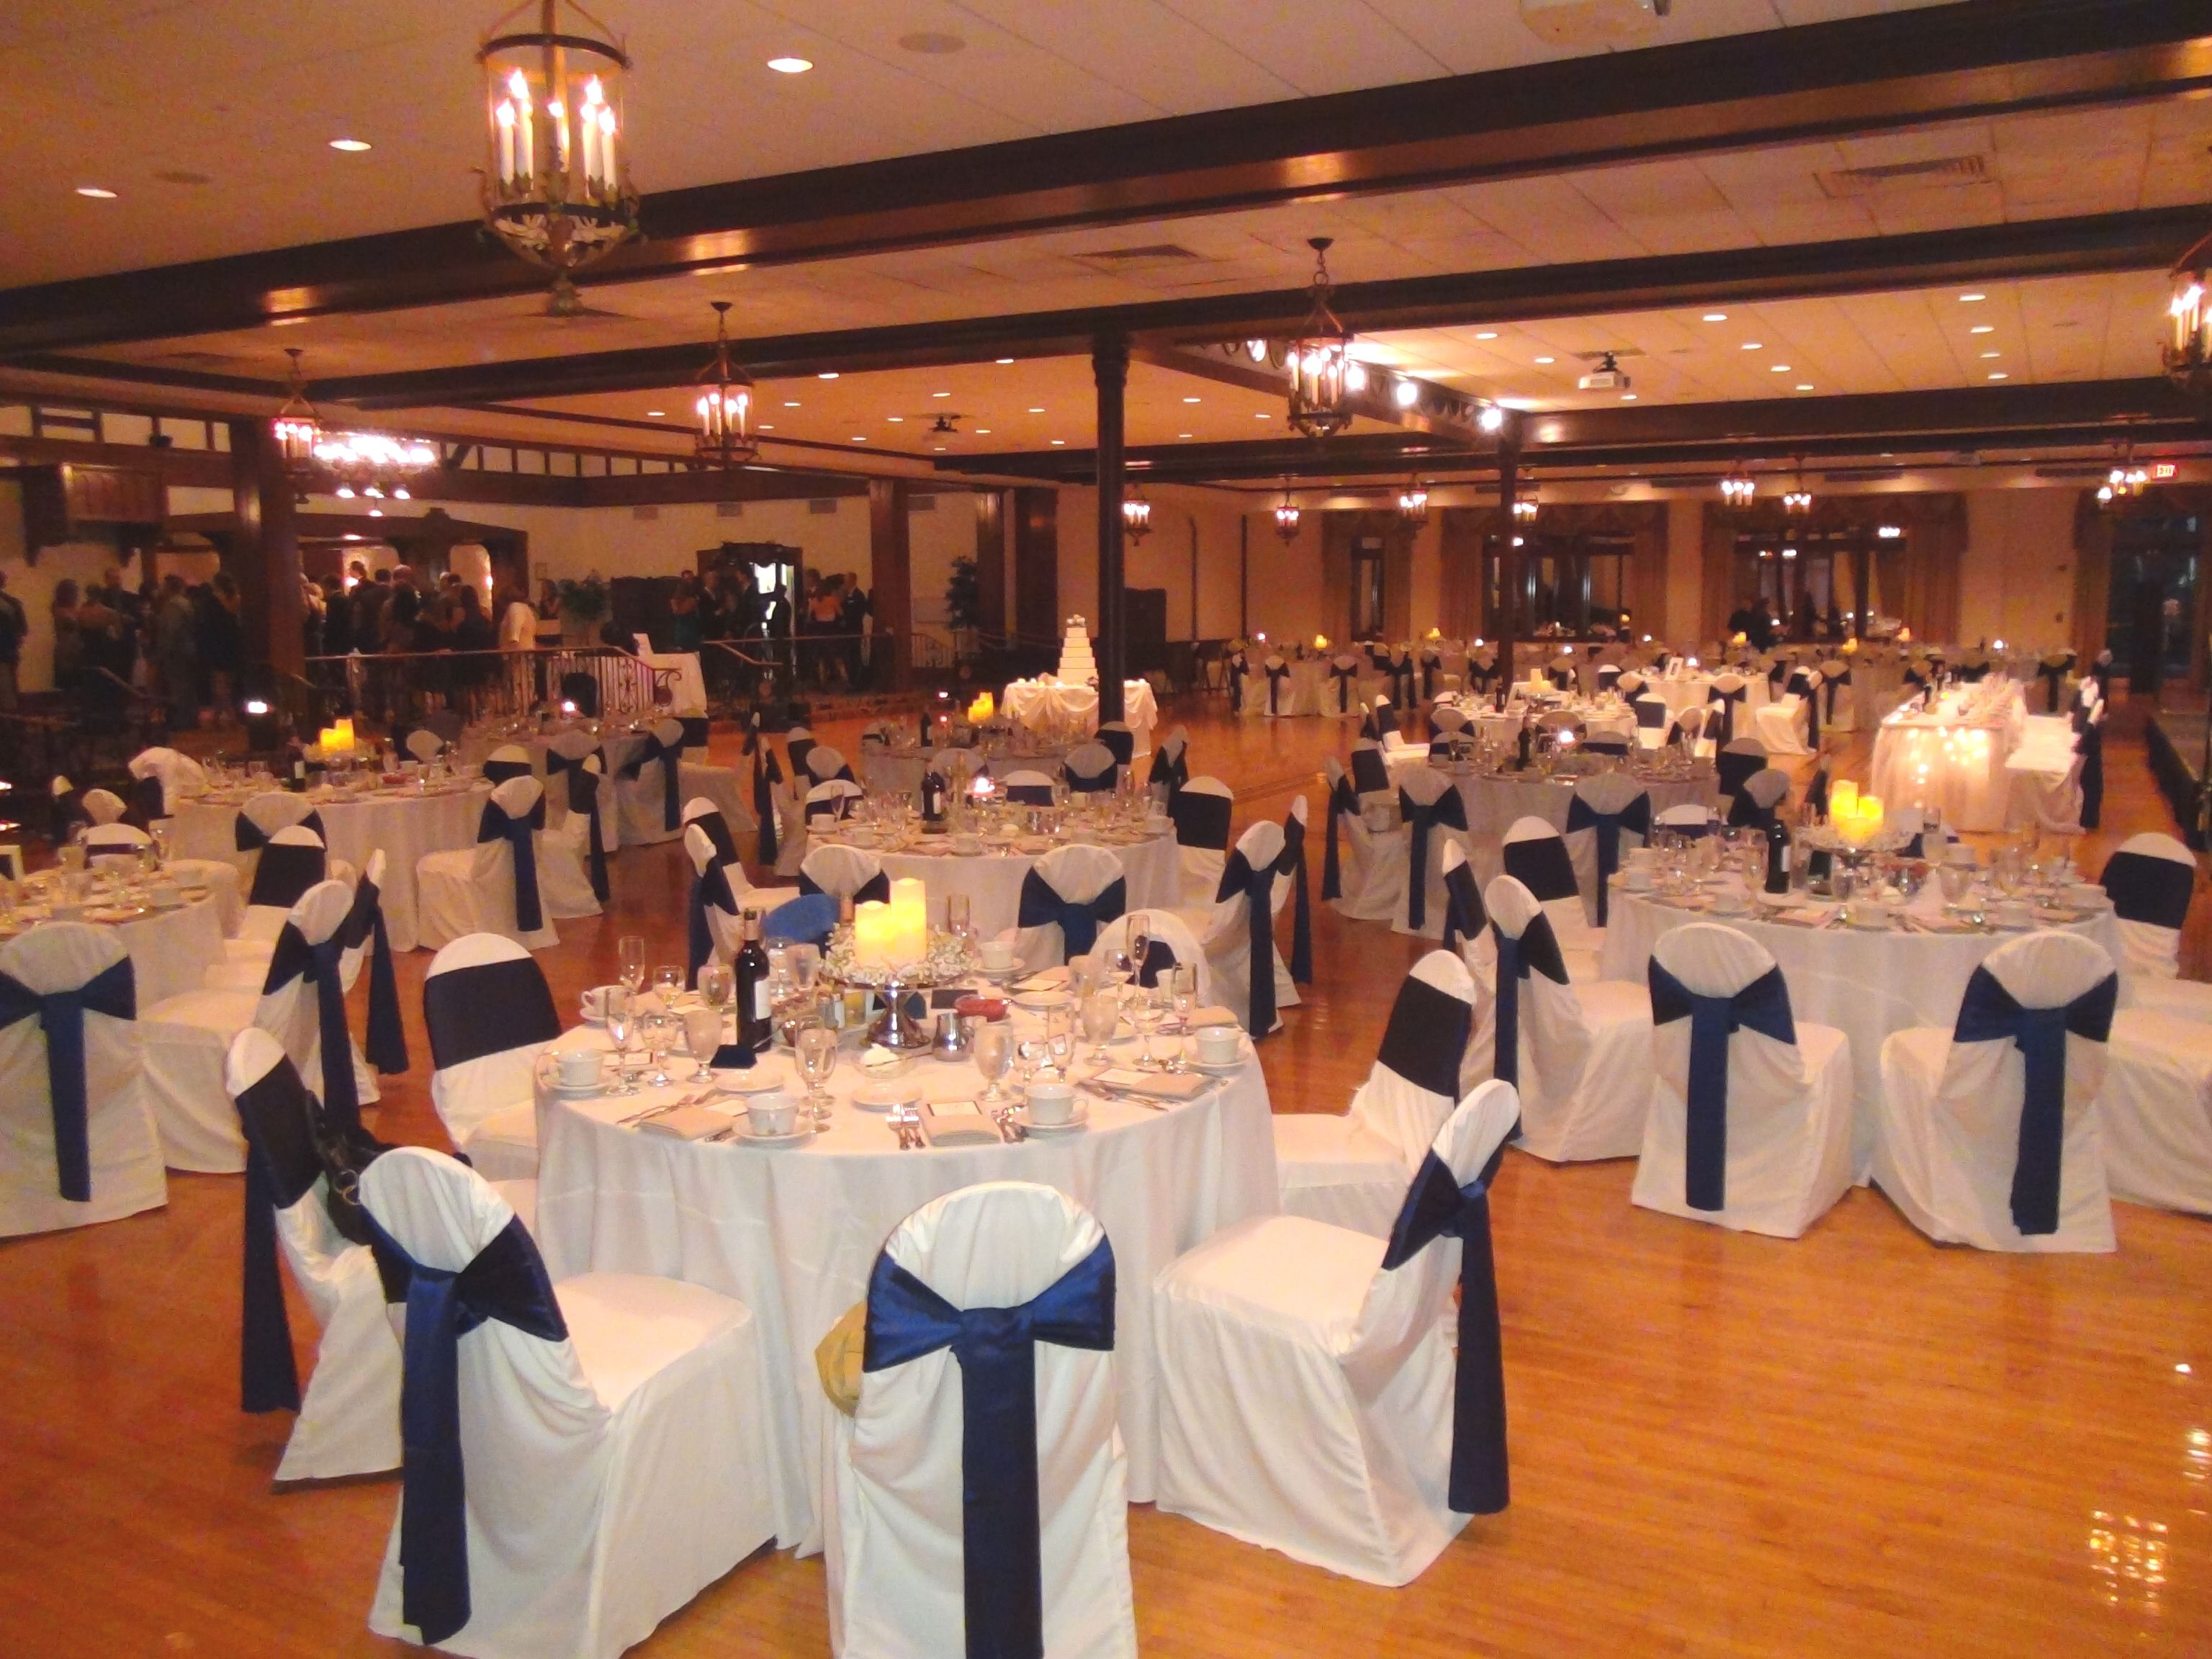 This Is The Ballroom At Chevy Chase Country Club Ideal Chicago Wedding DJ Experience